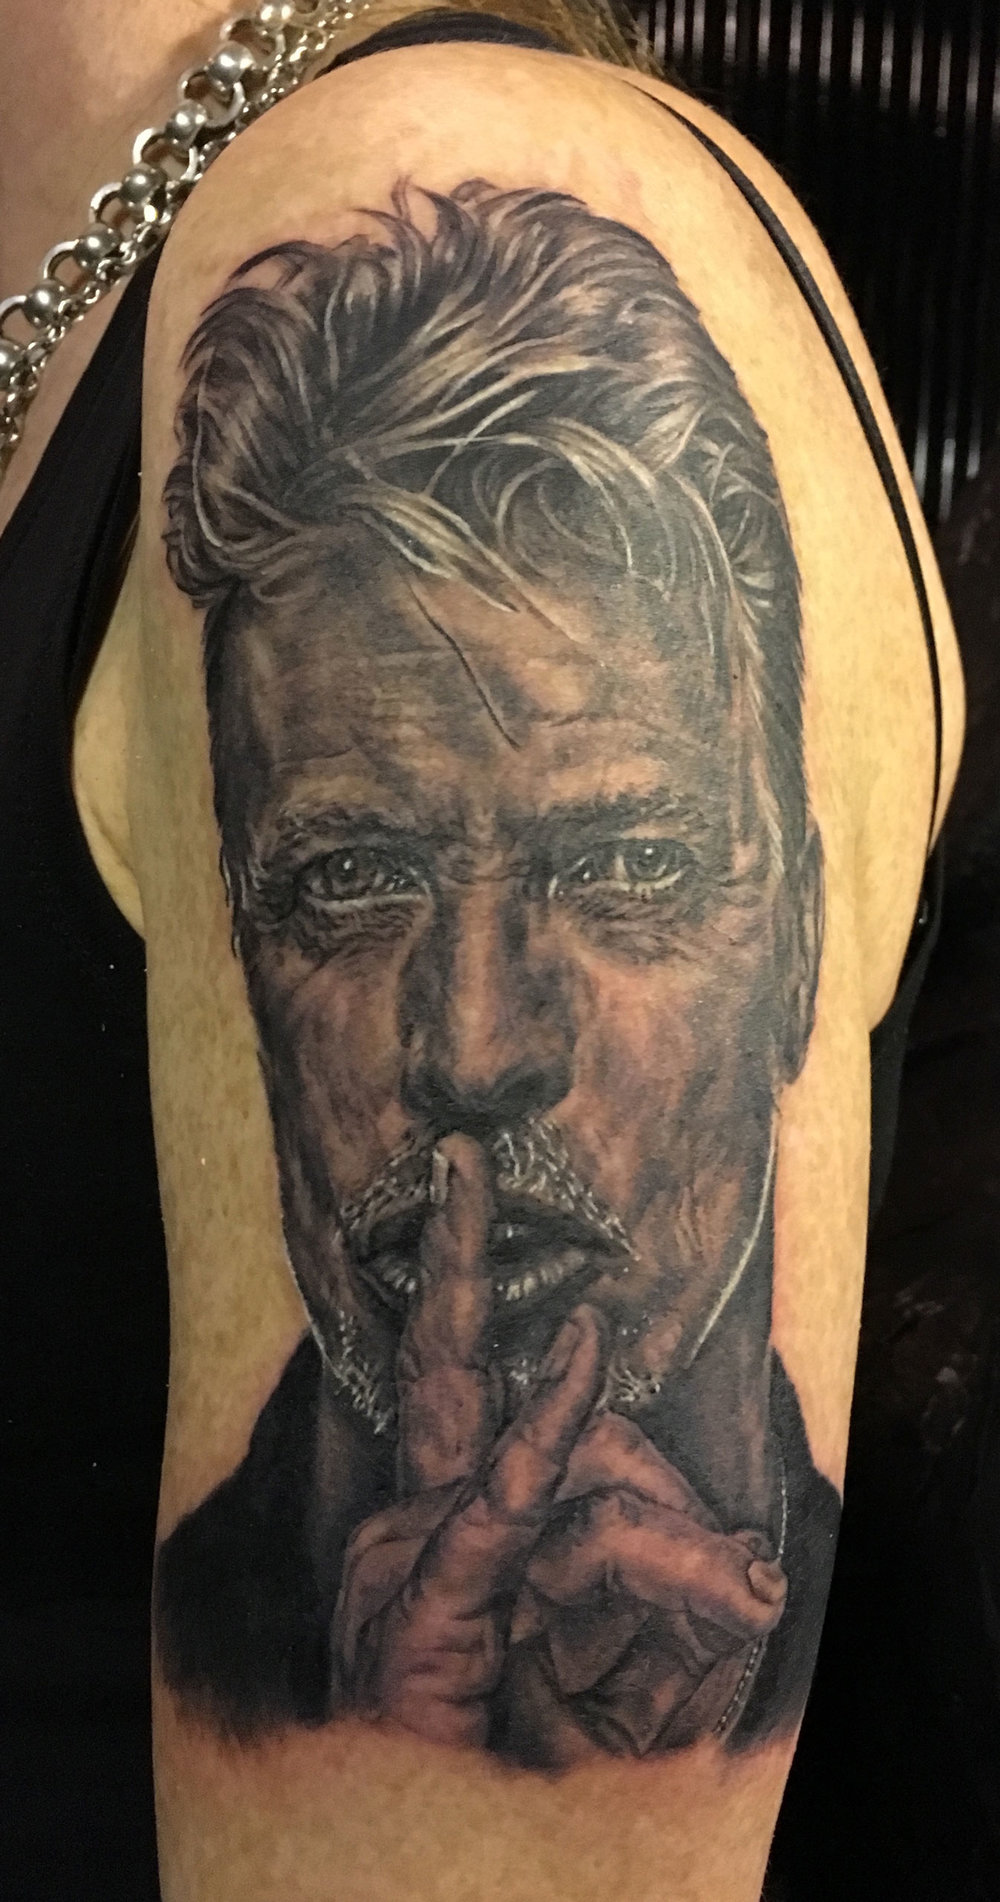 Black and Grey David Bowie Portrait Tattoo, (fresh)